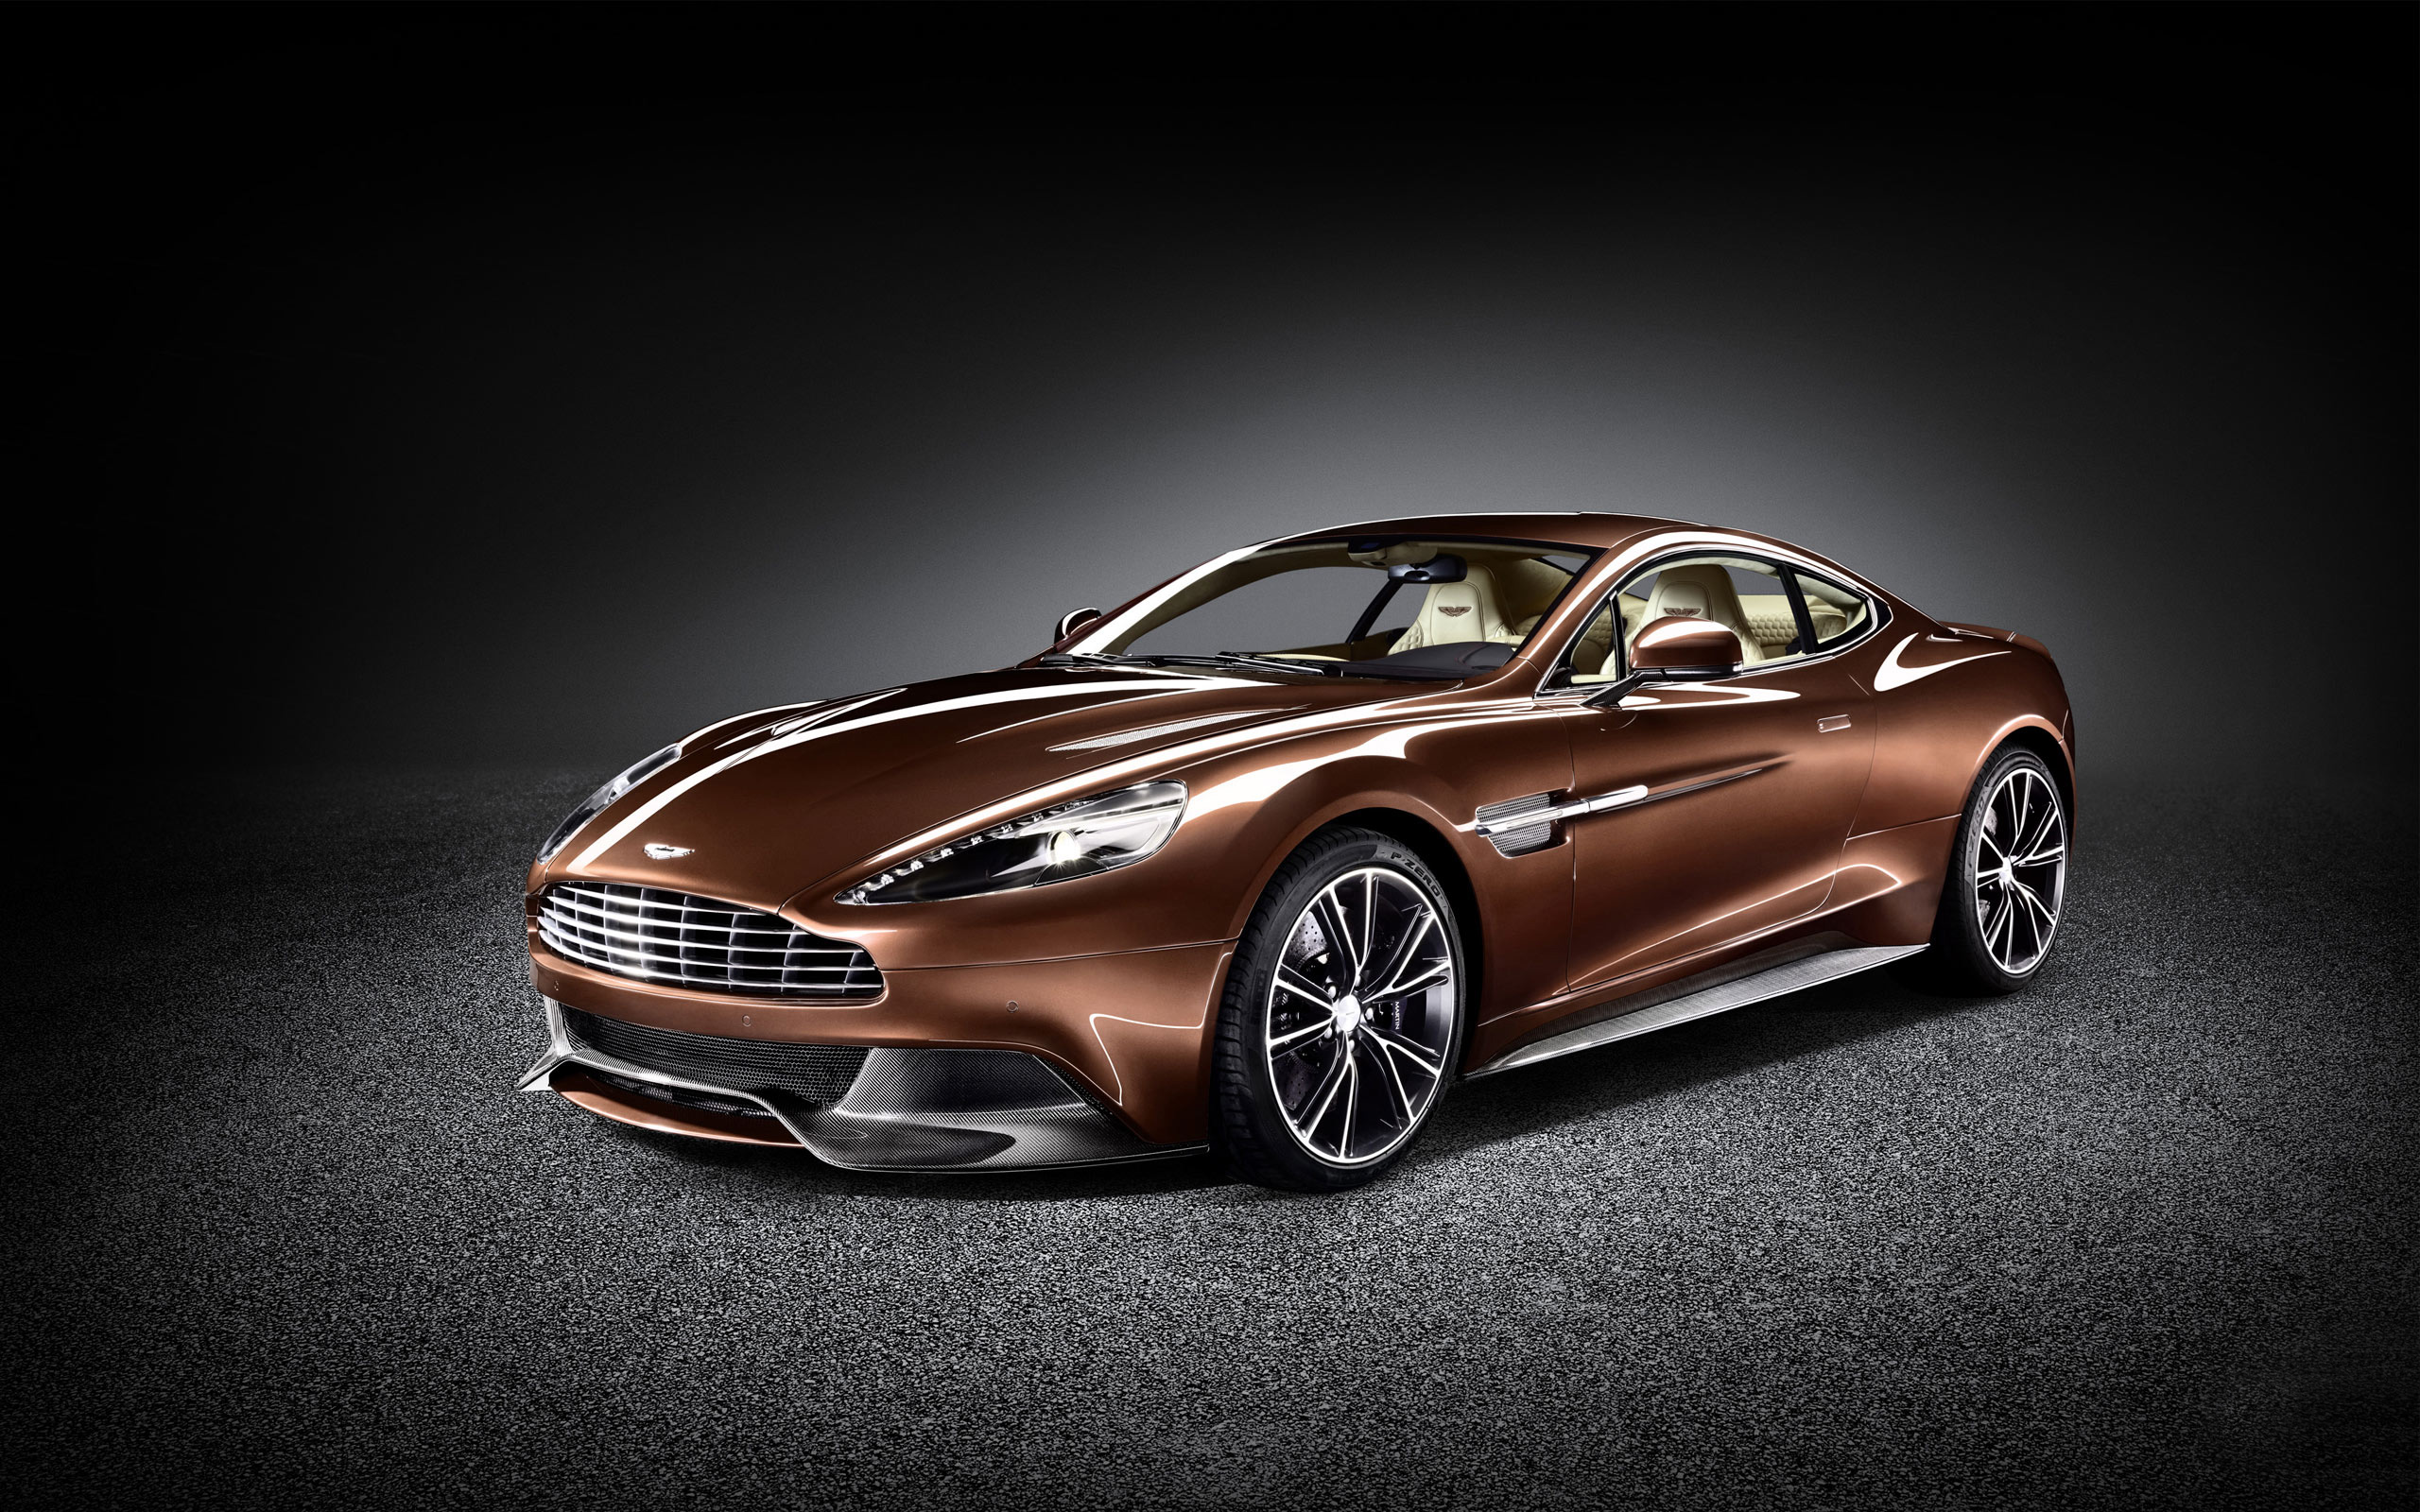 2013 Aston Martin Vanquish 2 Wallpaper HD Car Wallpapers 2560x1600